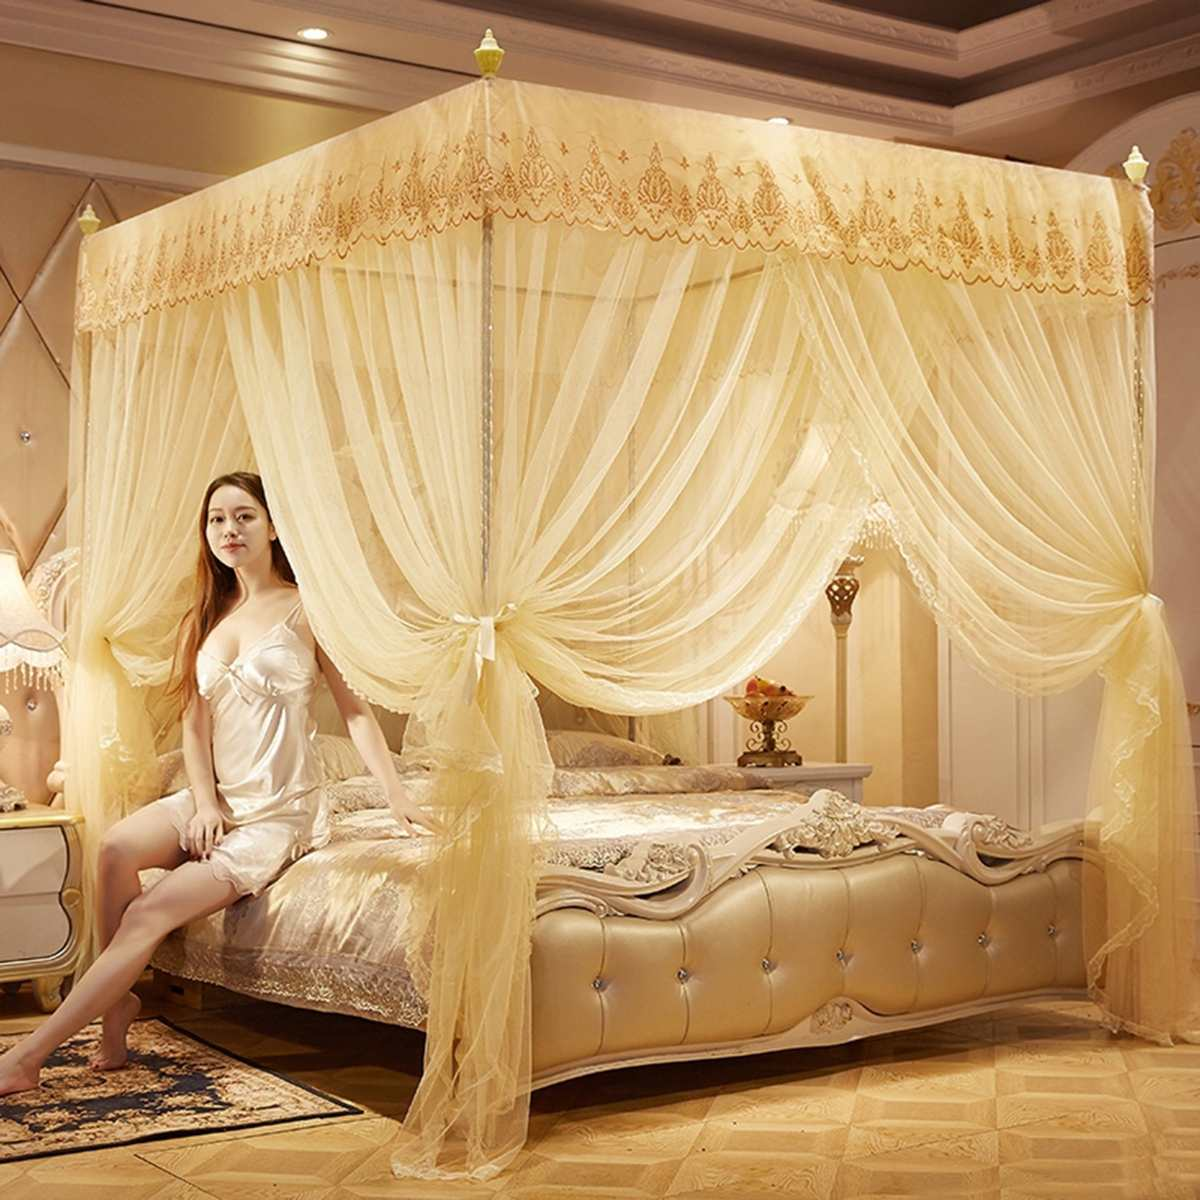 Elegant Canopy Mosquito Net For Double Bed Mosquito Repellent Tent Insect Reject Canopy Bed Curtain Bed Tent